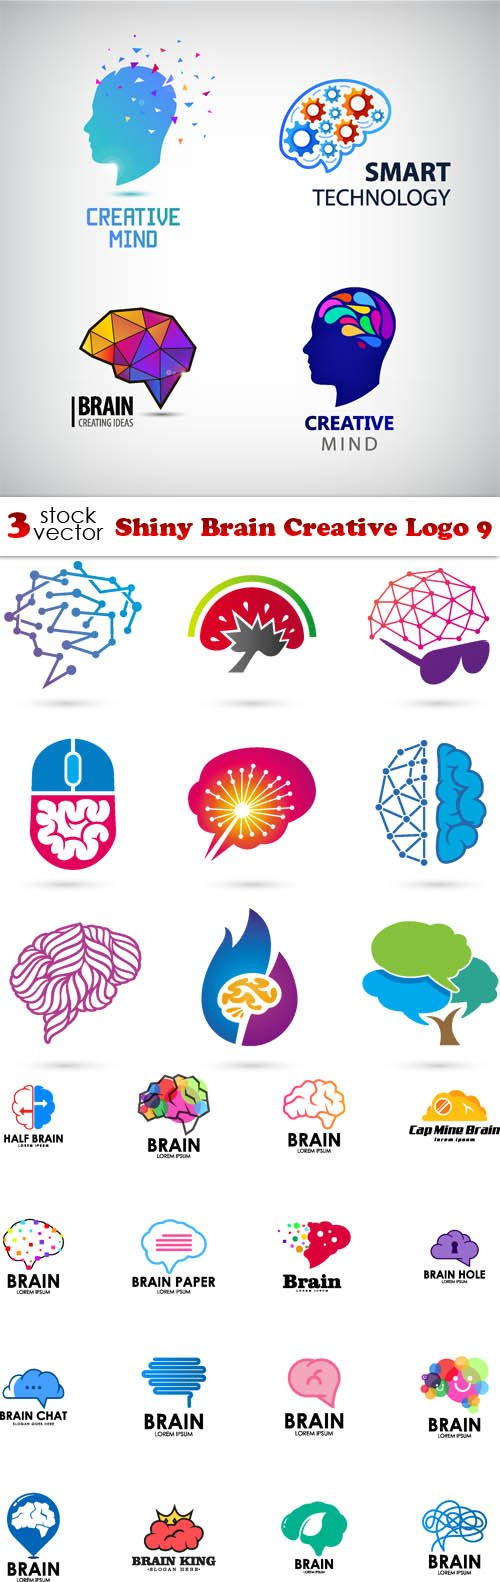 Vectors - Shiny Brain Creative Logo 9